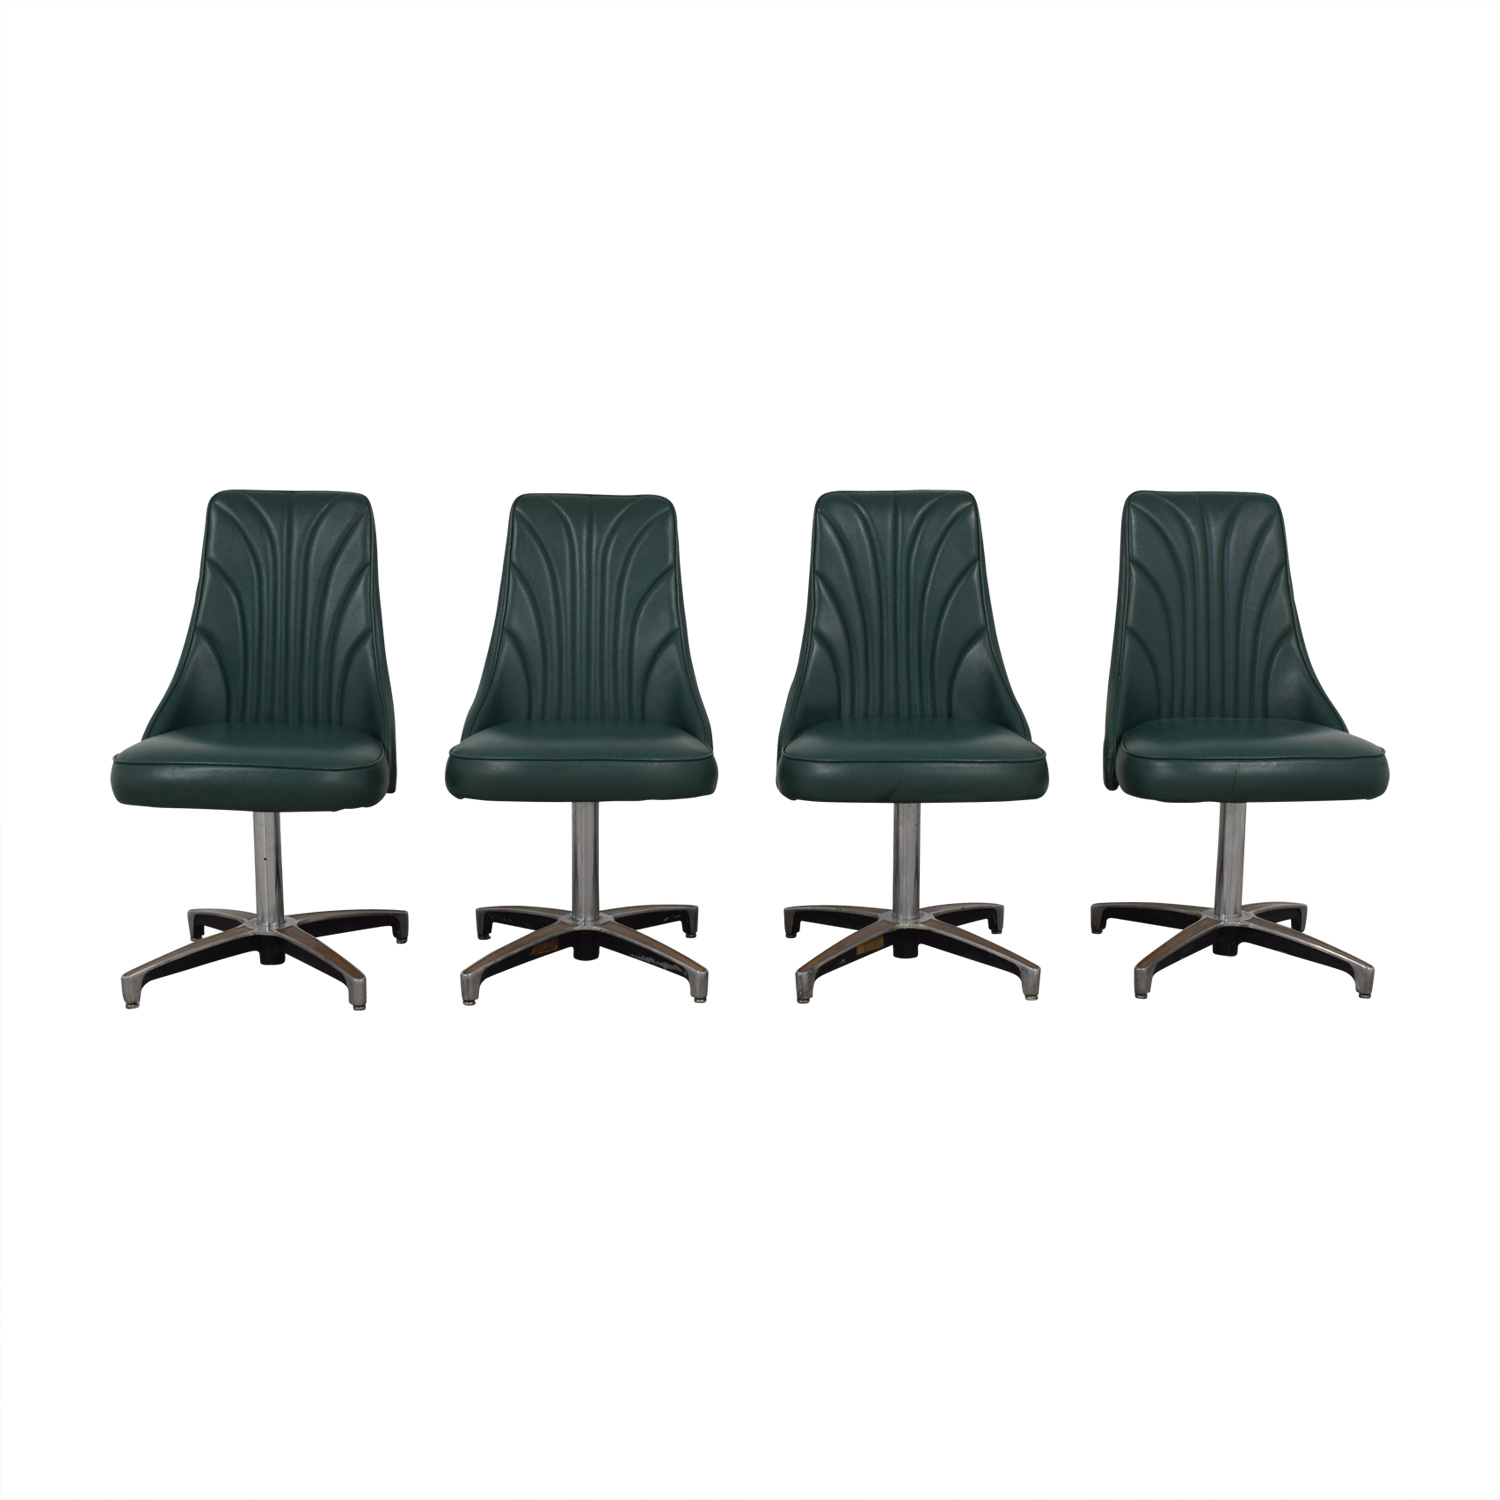 buy Vintage Teal Green Dining Chairs  Dining Chairs